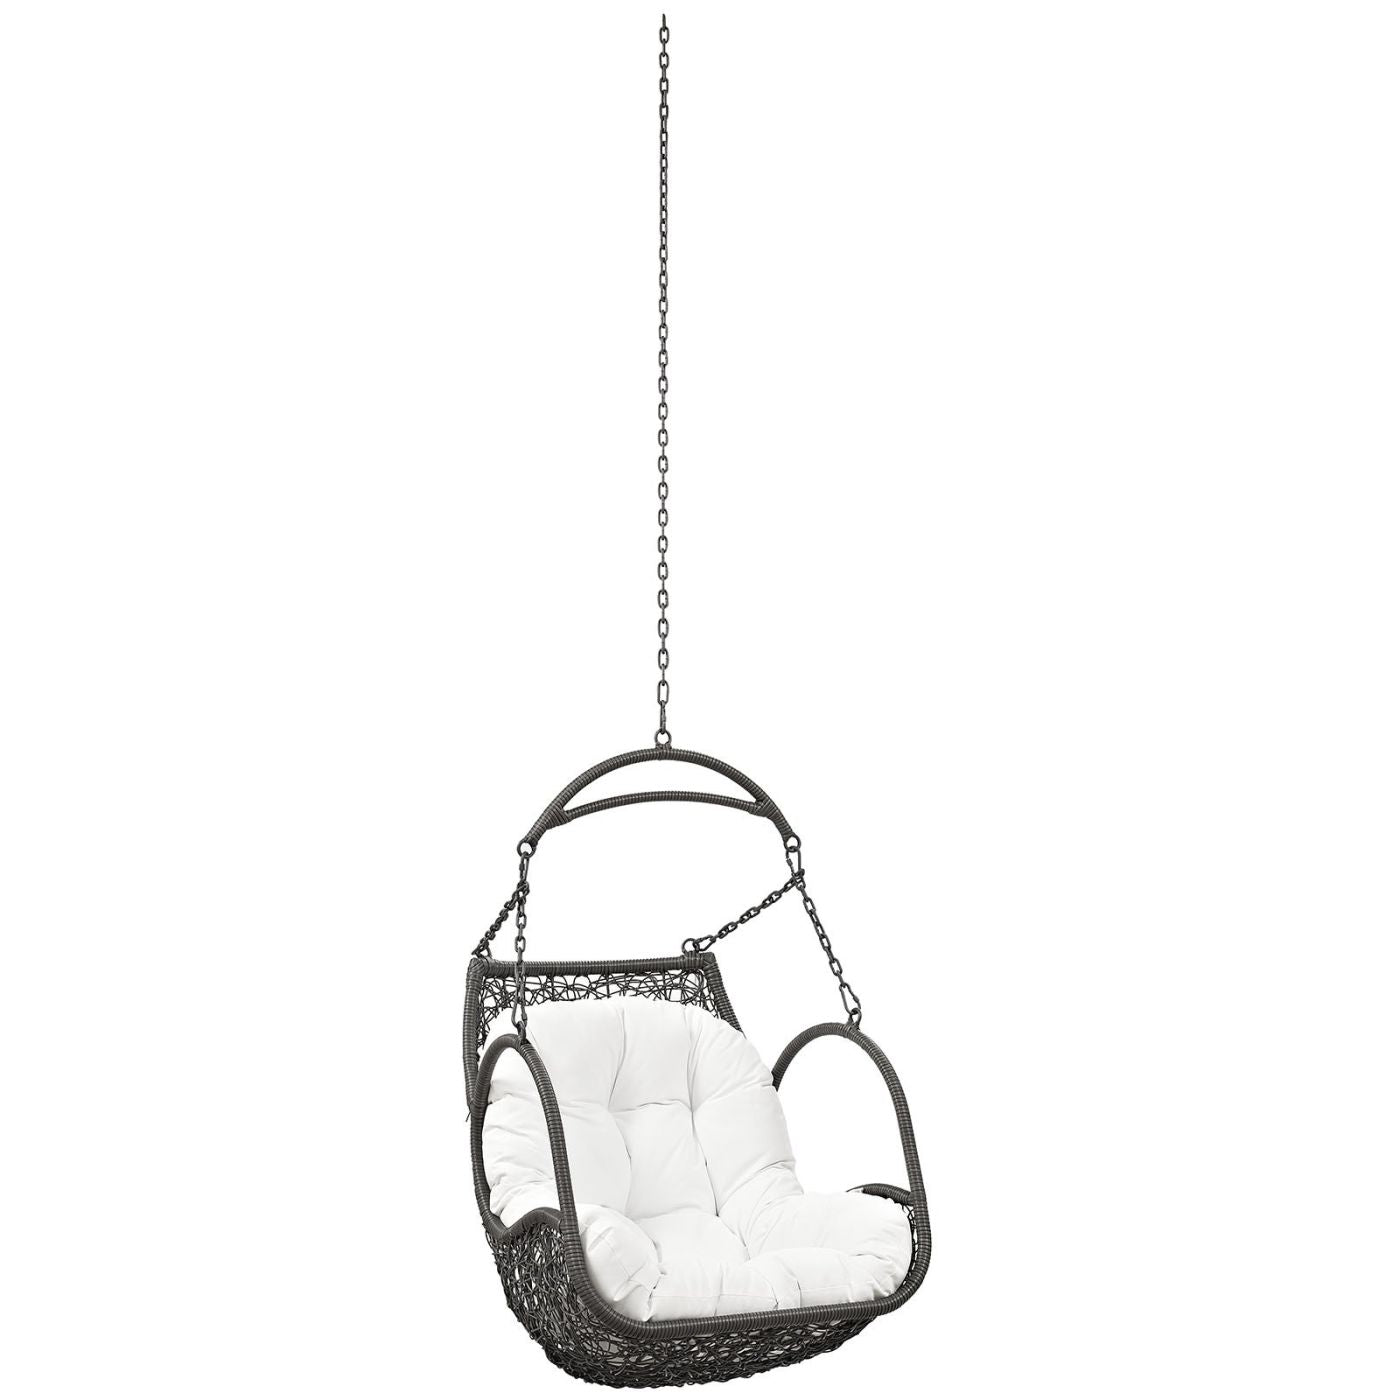 Arbor Outdoor Patio Swing Chair Without Stand White Lounge ...